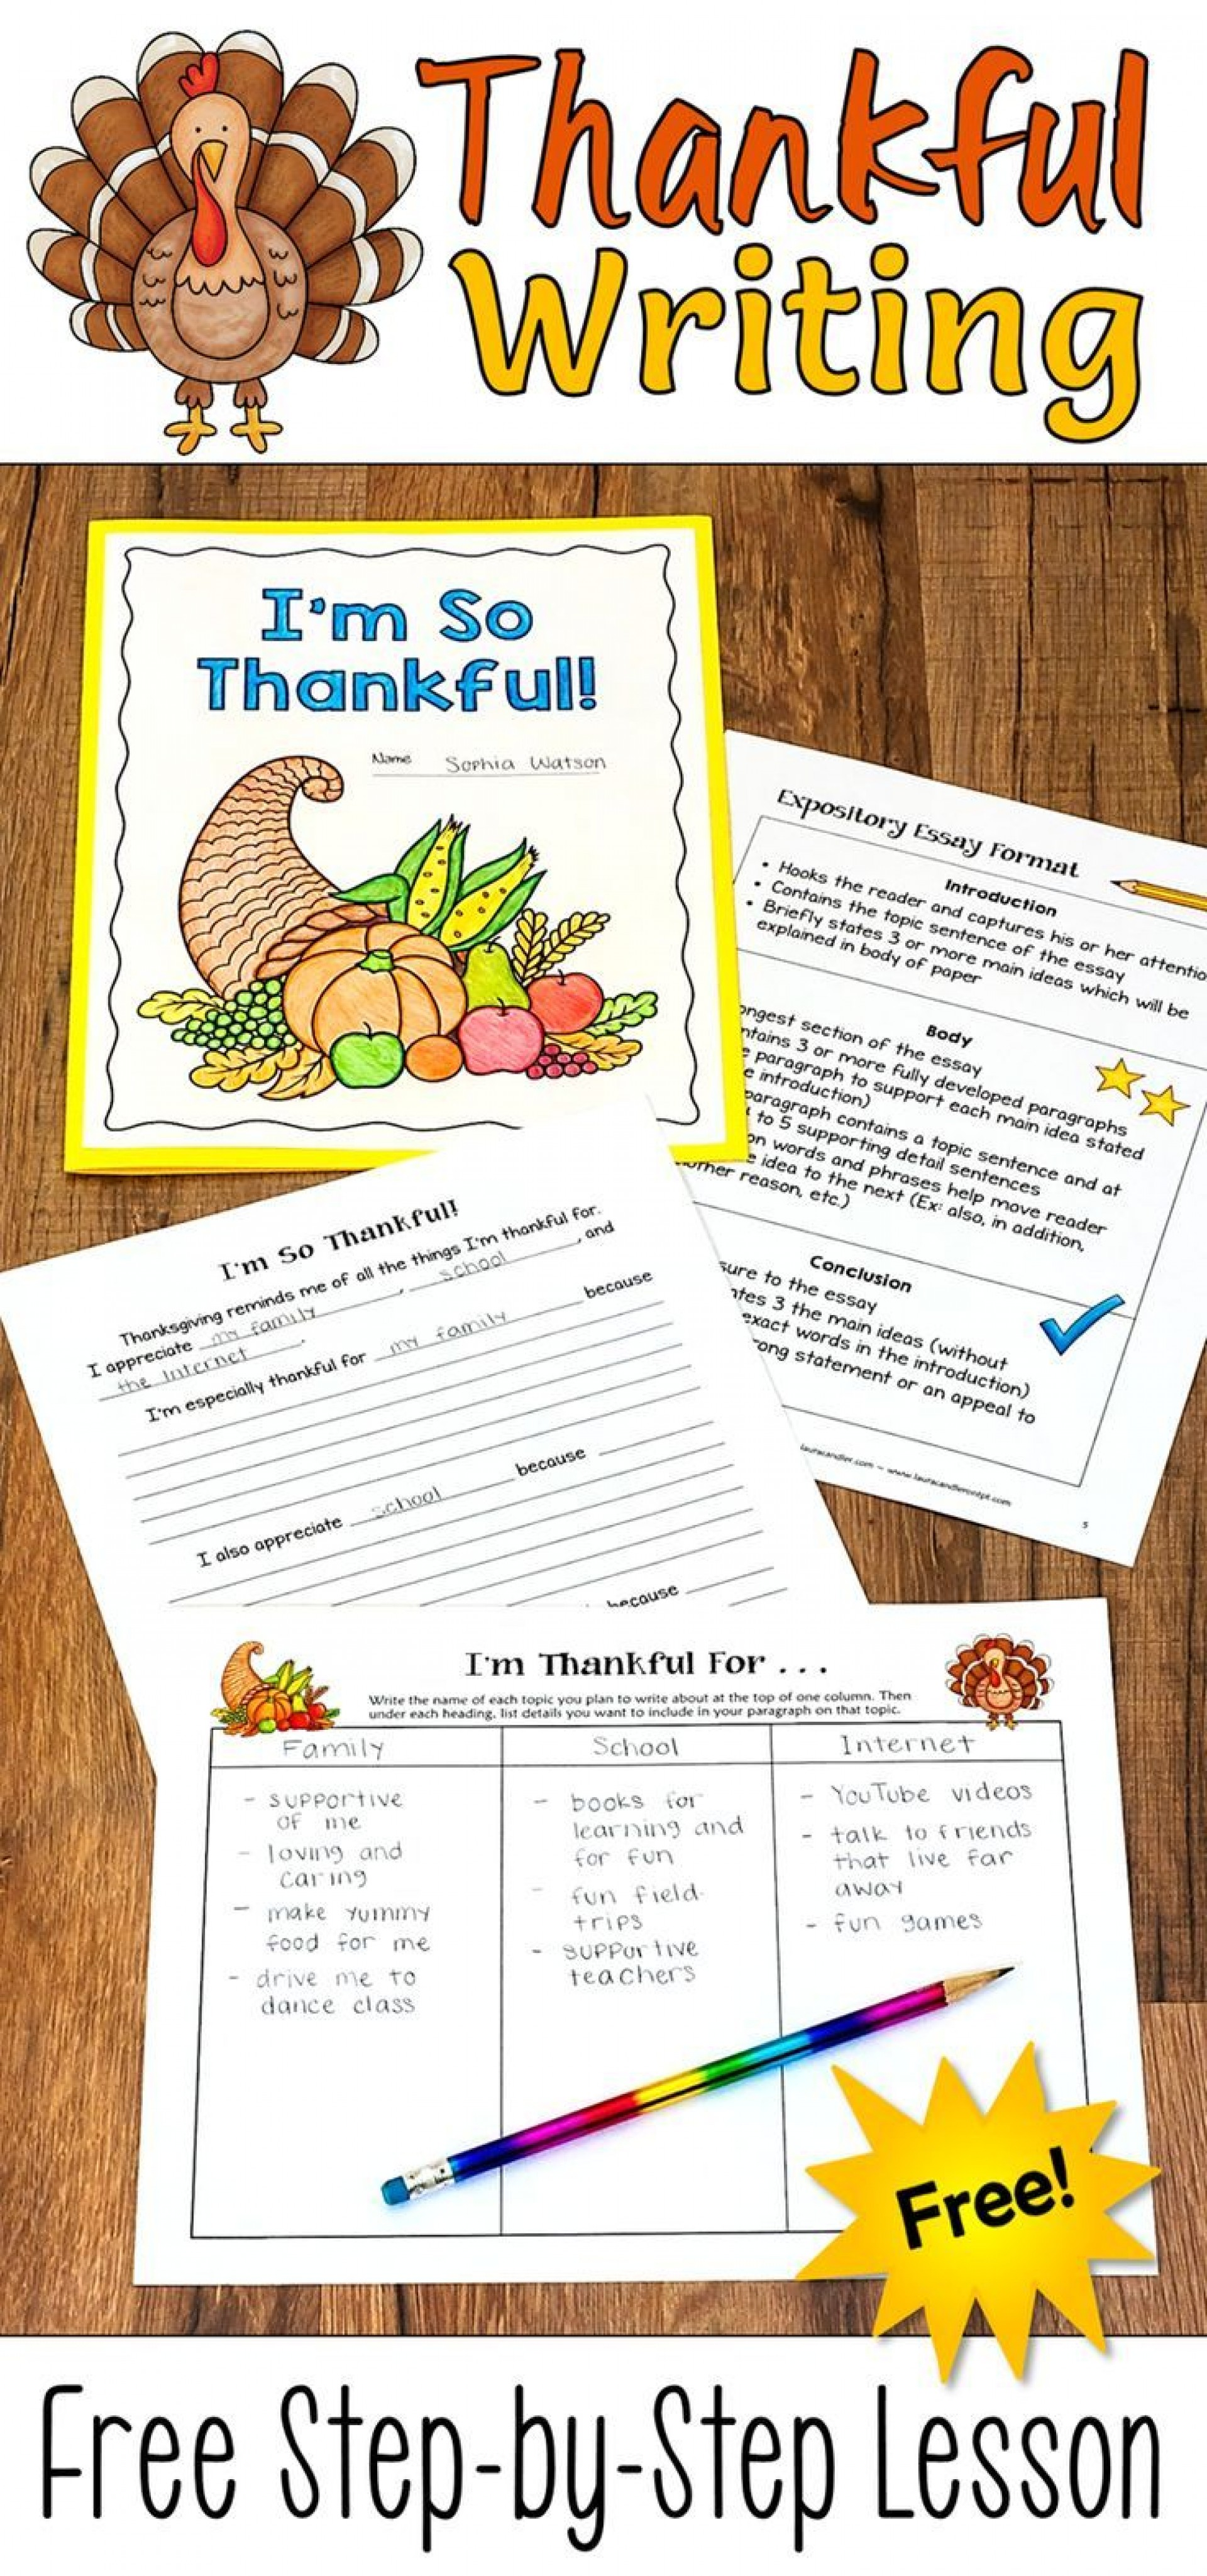 009 Thanksgiving Essay Example Fantastic In Spanish Writing For 3rd Grade Assignment 1920